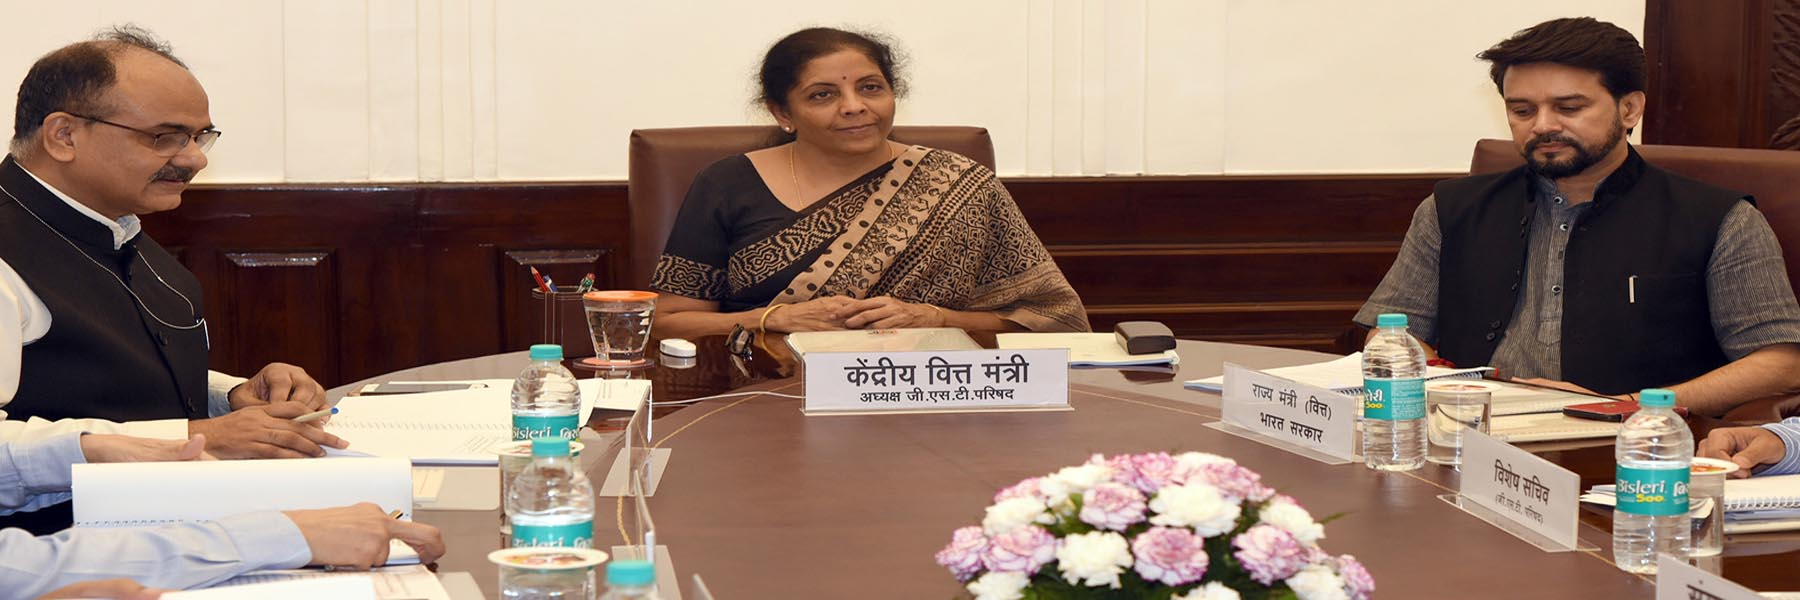 The Union Minister for Finance and Corporate Affairs, Smt. Nirmala Sitharaman chairing the 36th GST Council meeting, in New Delhi on July 27, 2019.